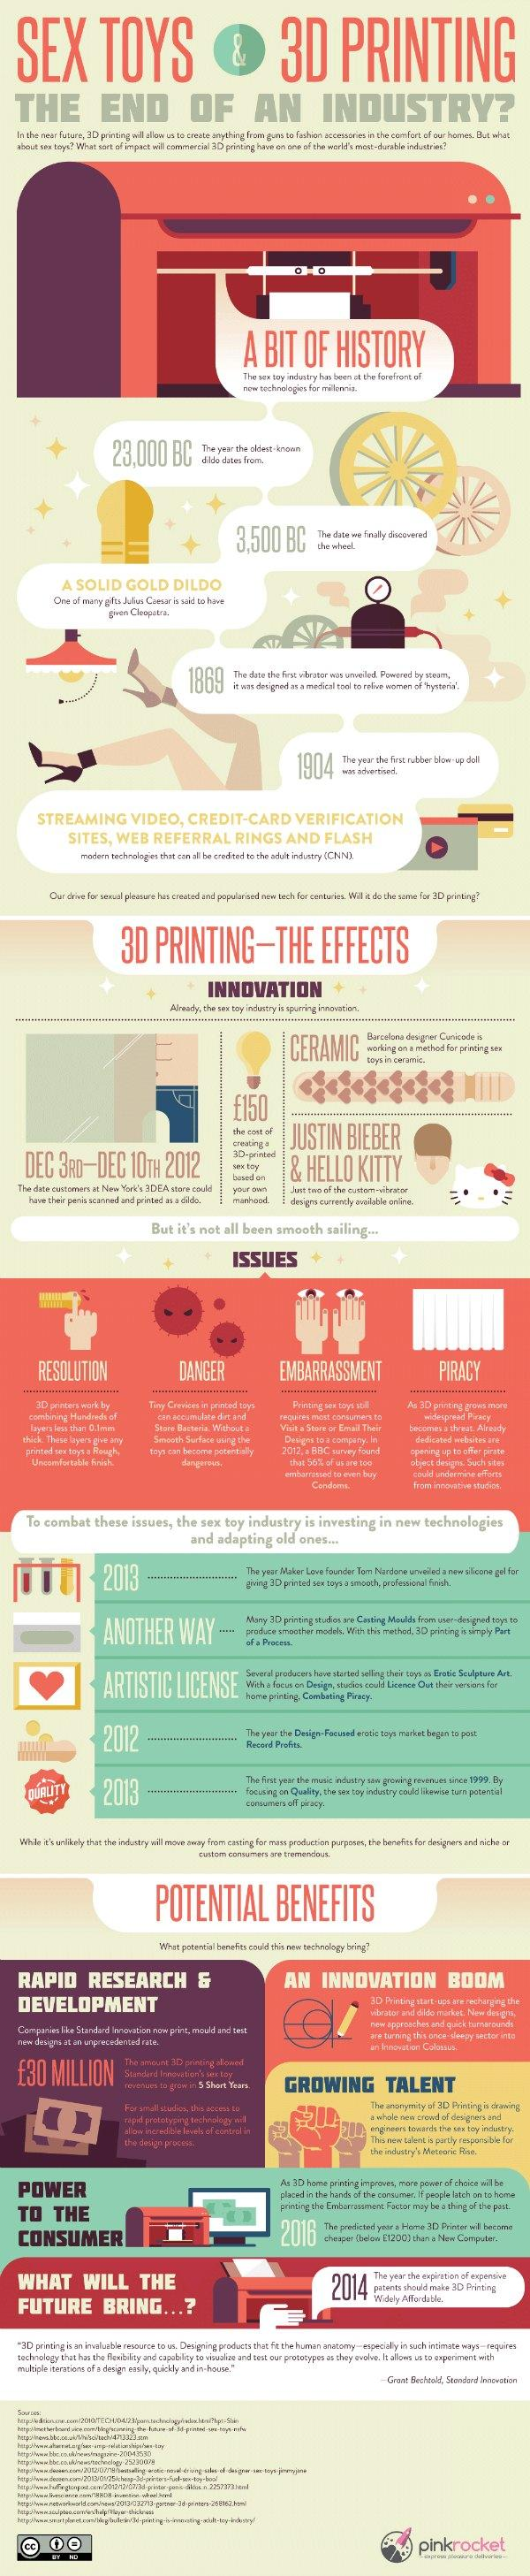 sex toys infographic